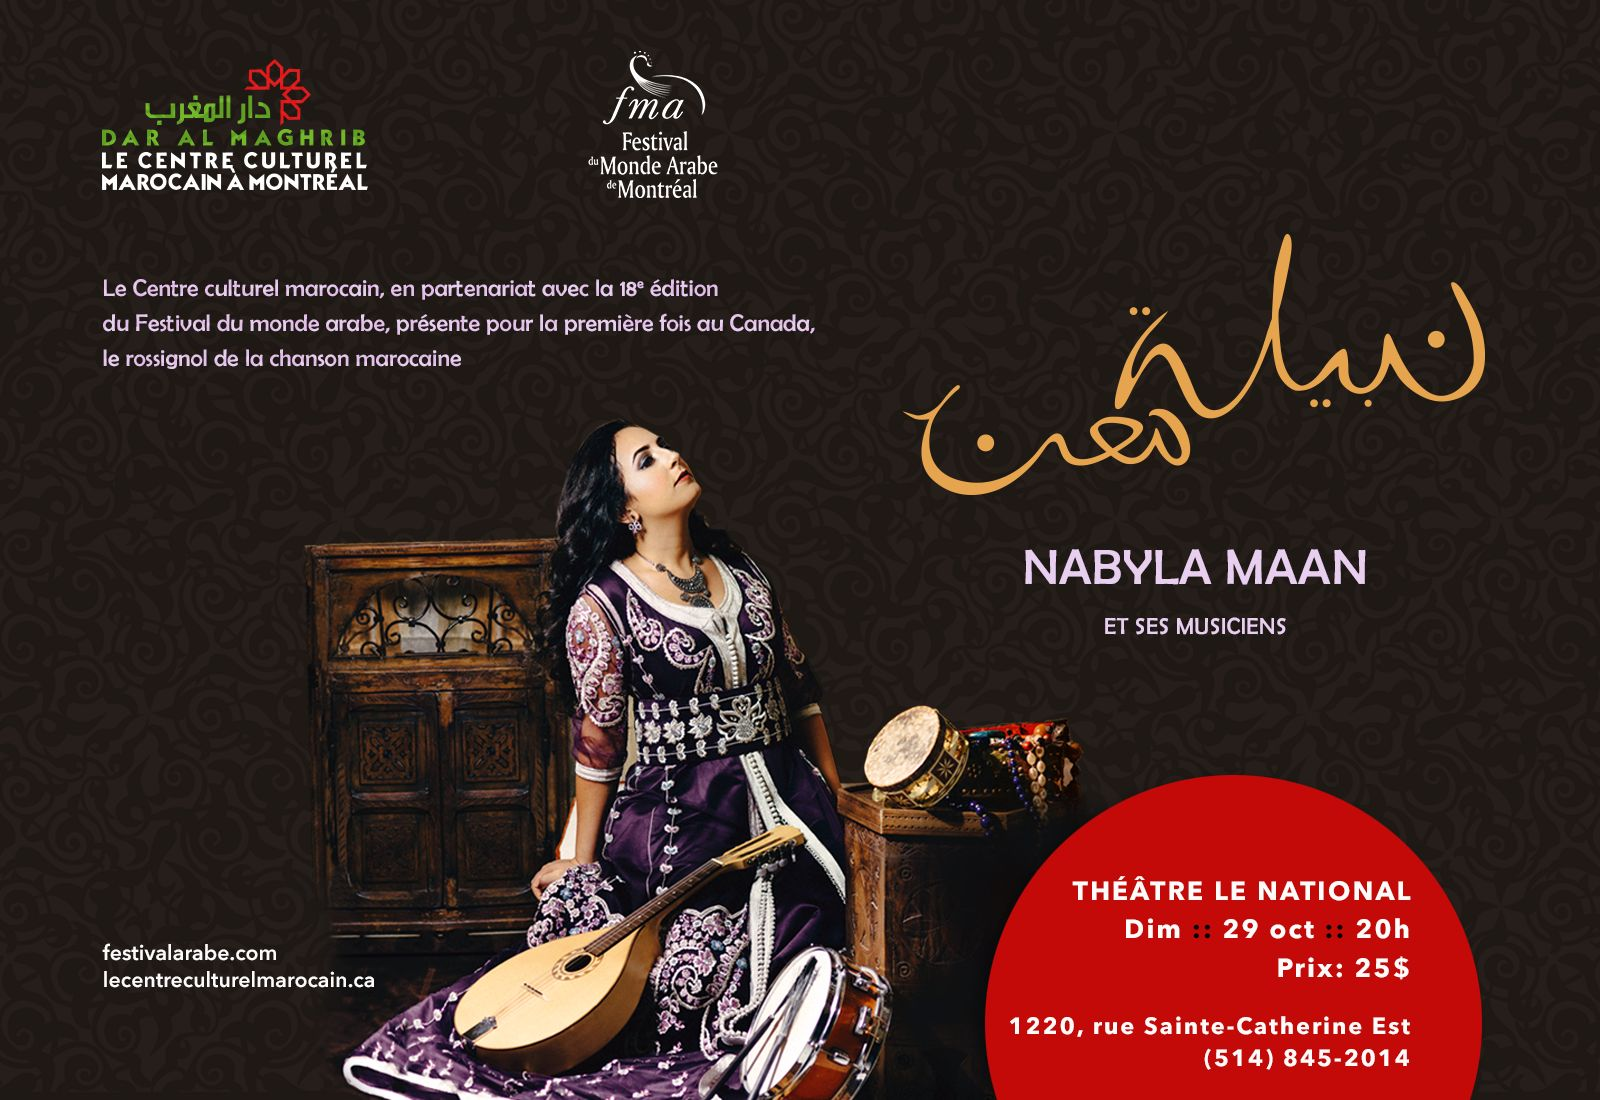 Spectacle de Nabyla Maan le 29 octobre auThéâtre le National  de 20h à 21h30